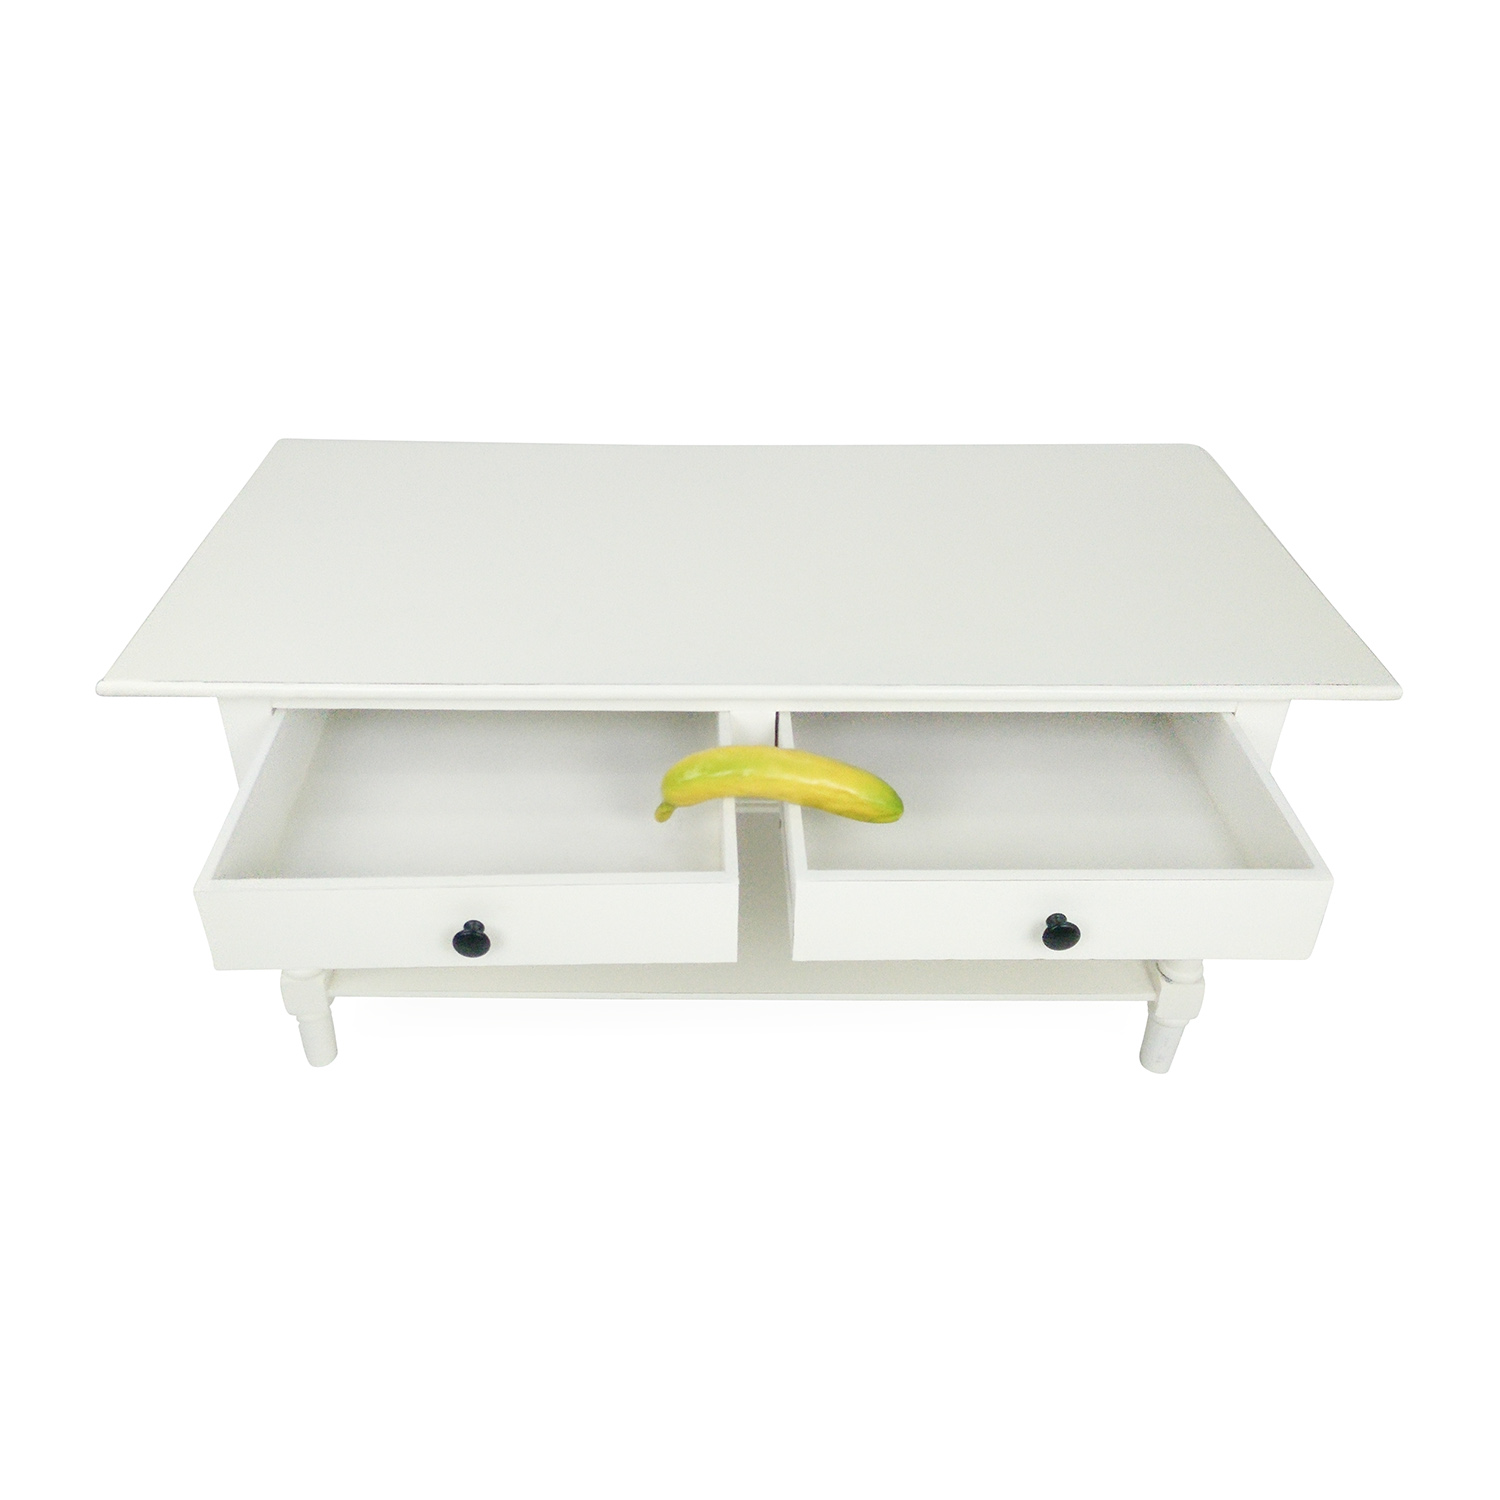 35% off - macy's macy's white two-drawer coffee table / tables